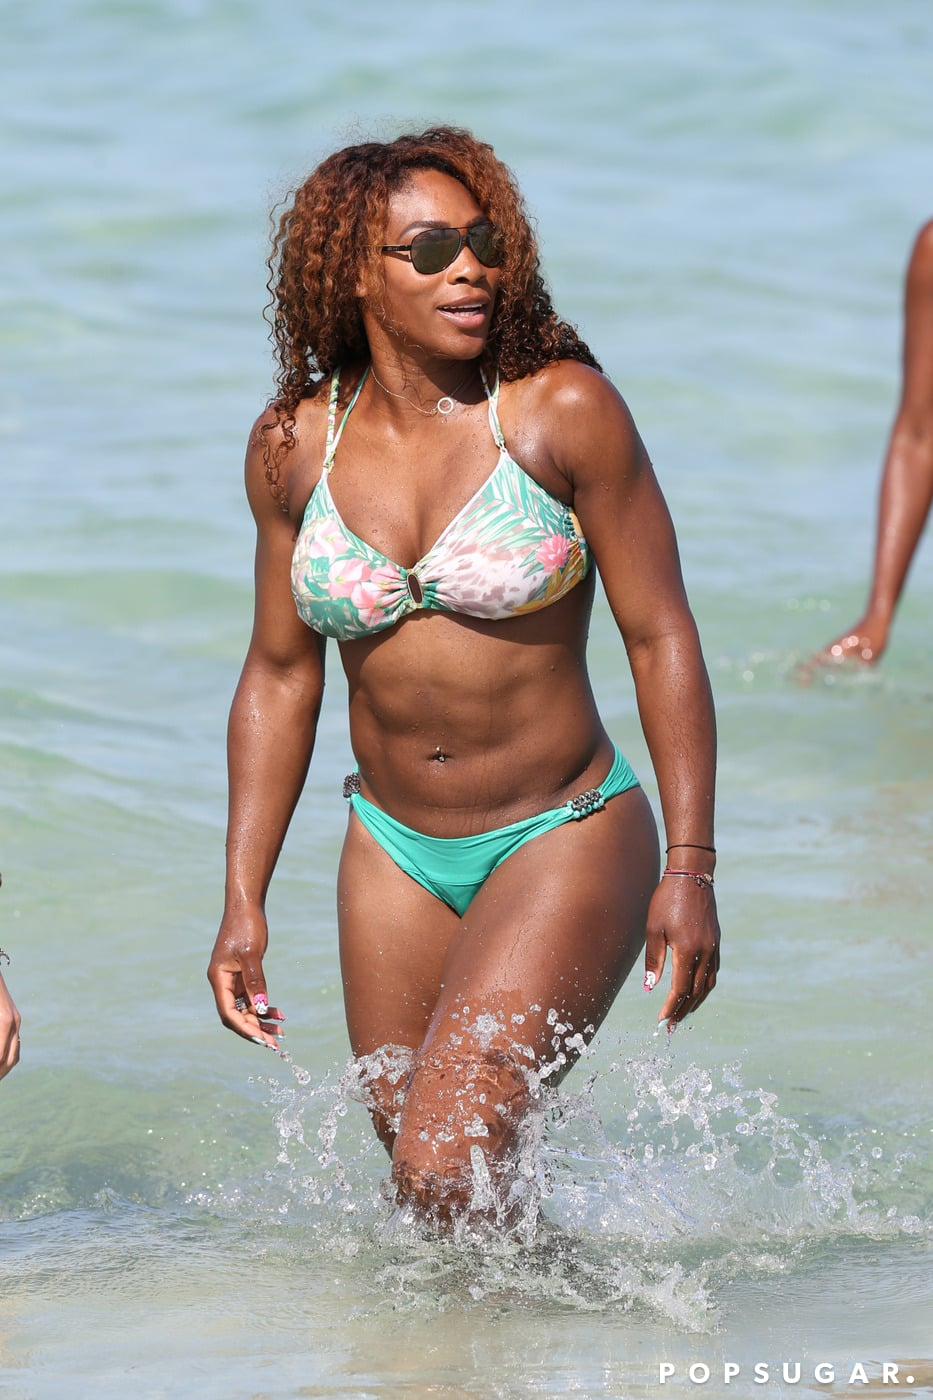 Serena Williams wore a green and floral two-piece.